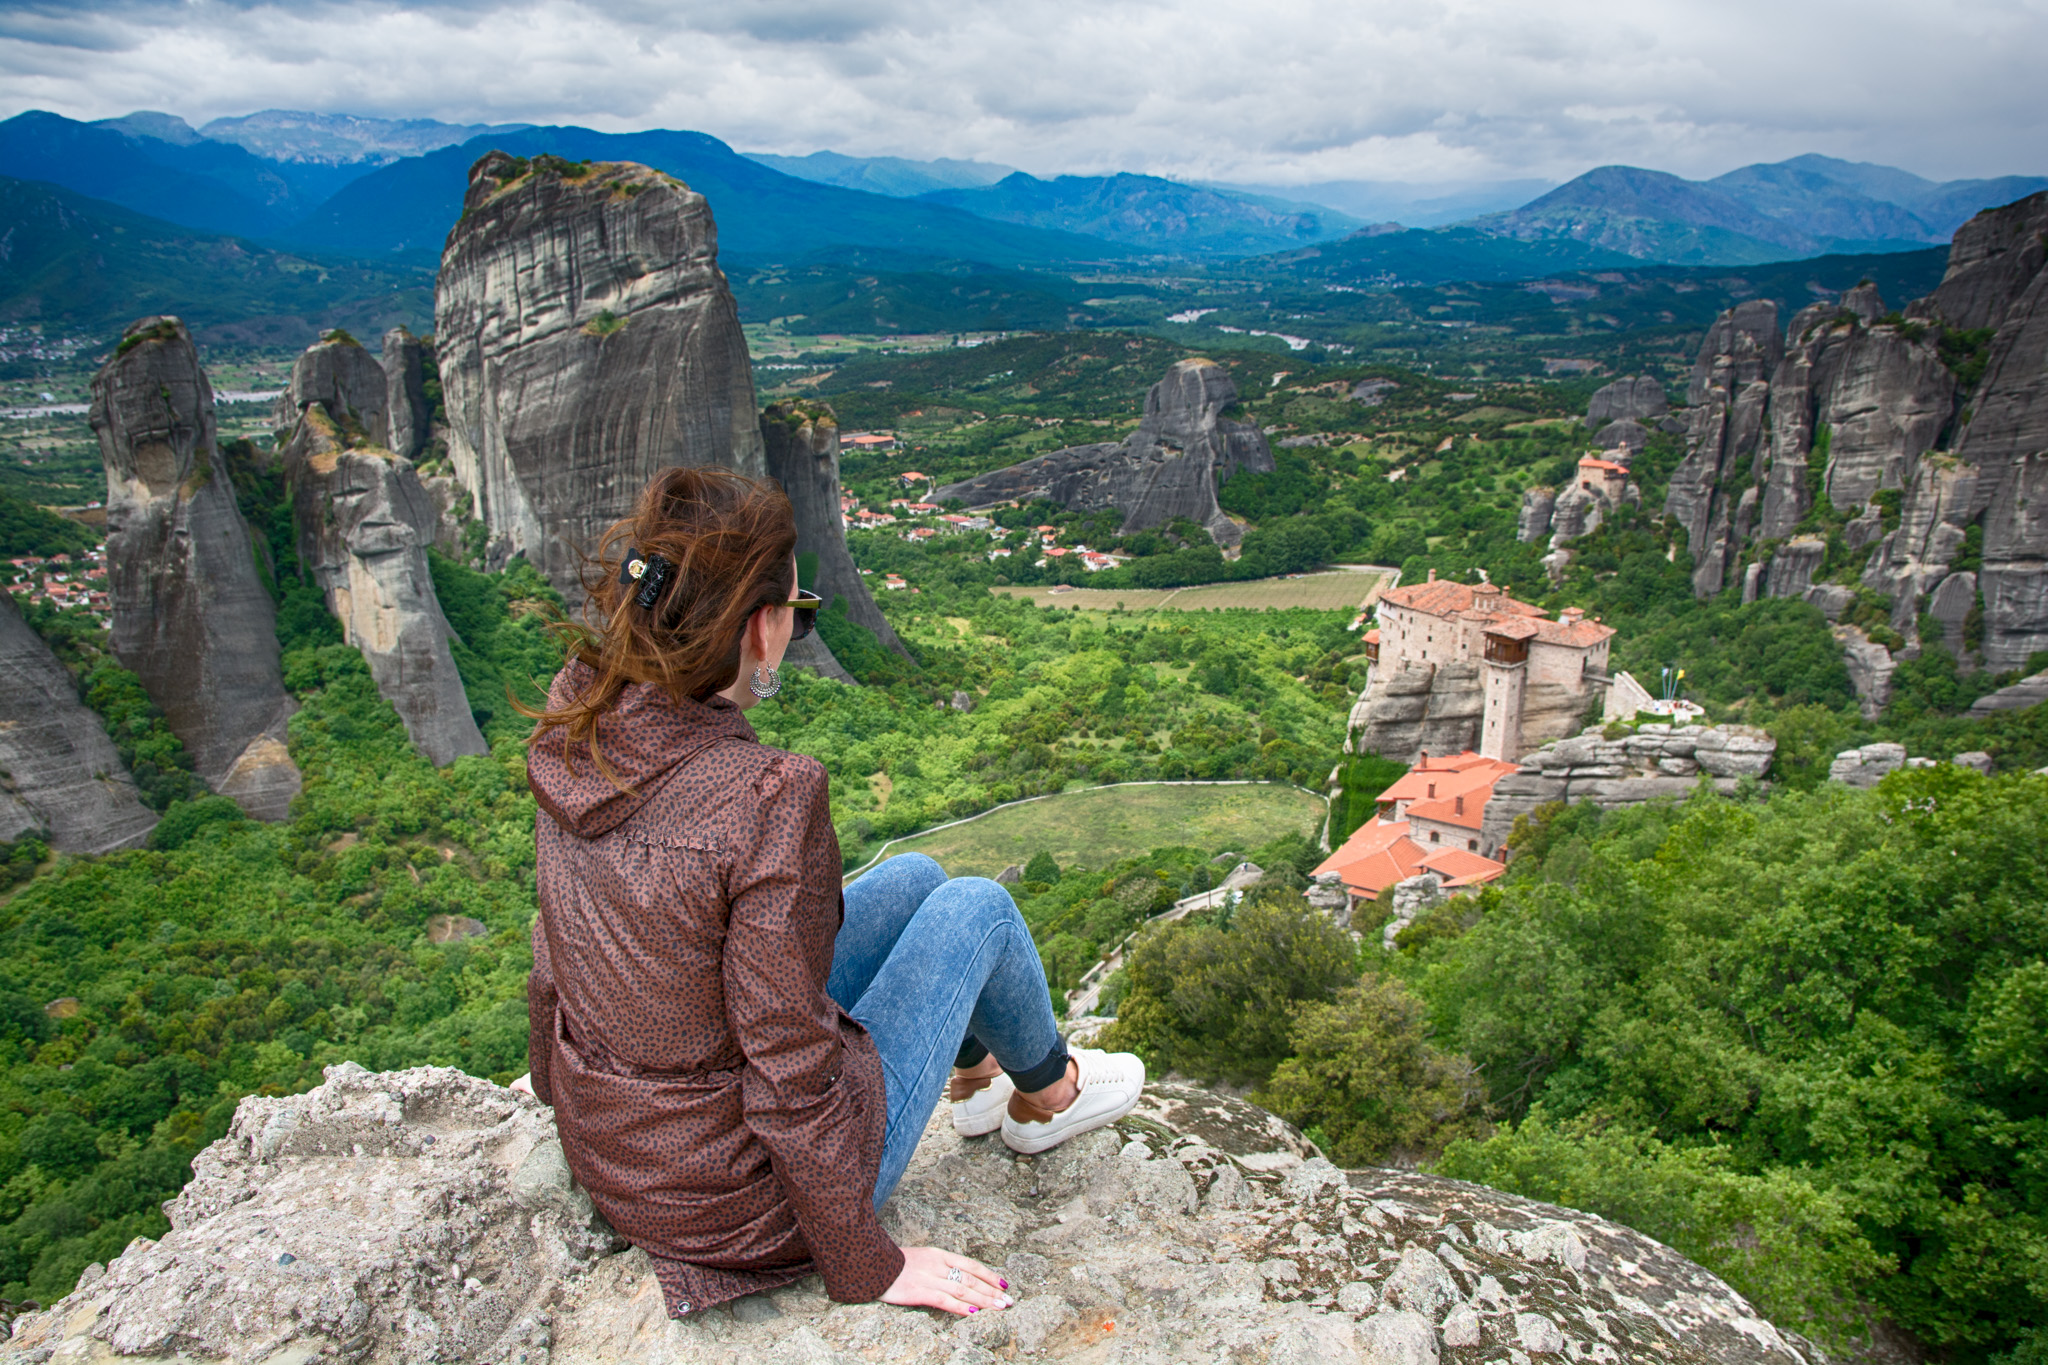 meteora scooter rental